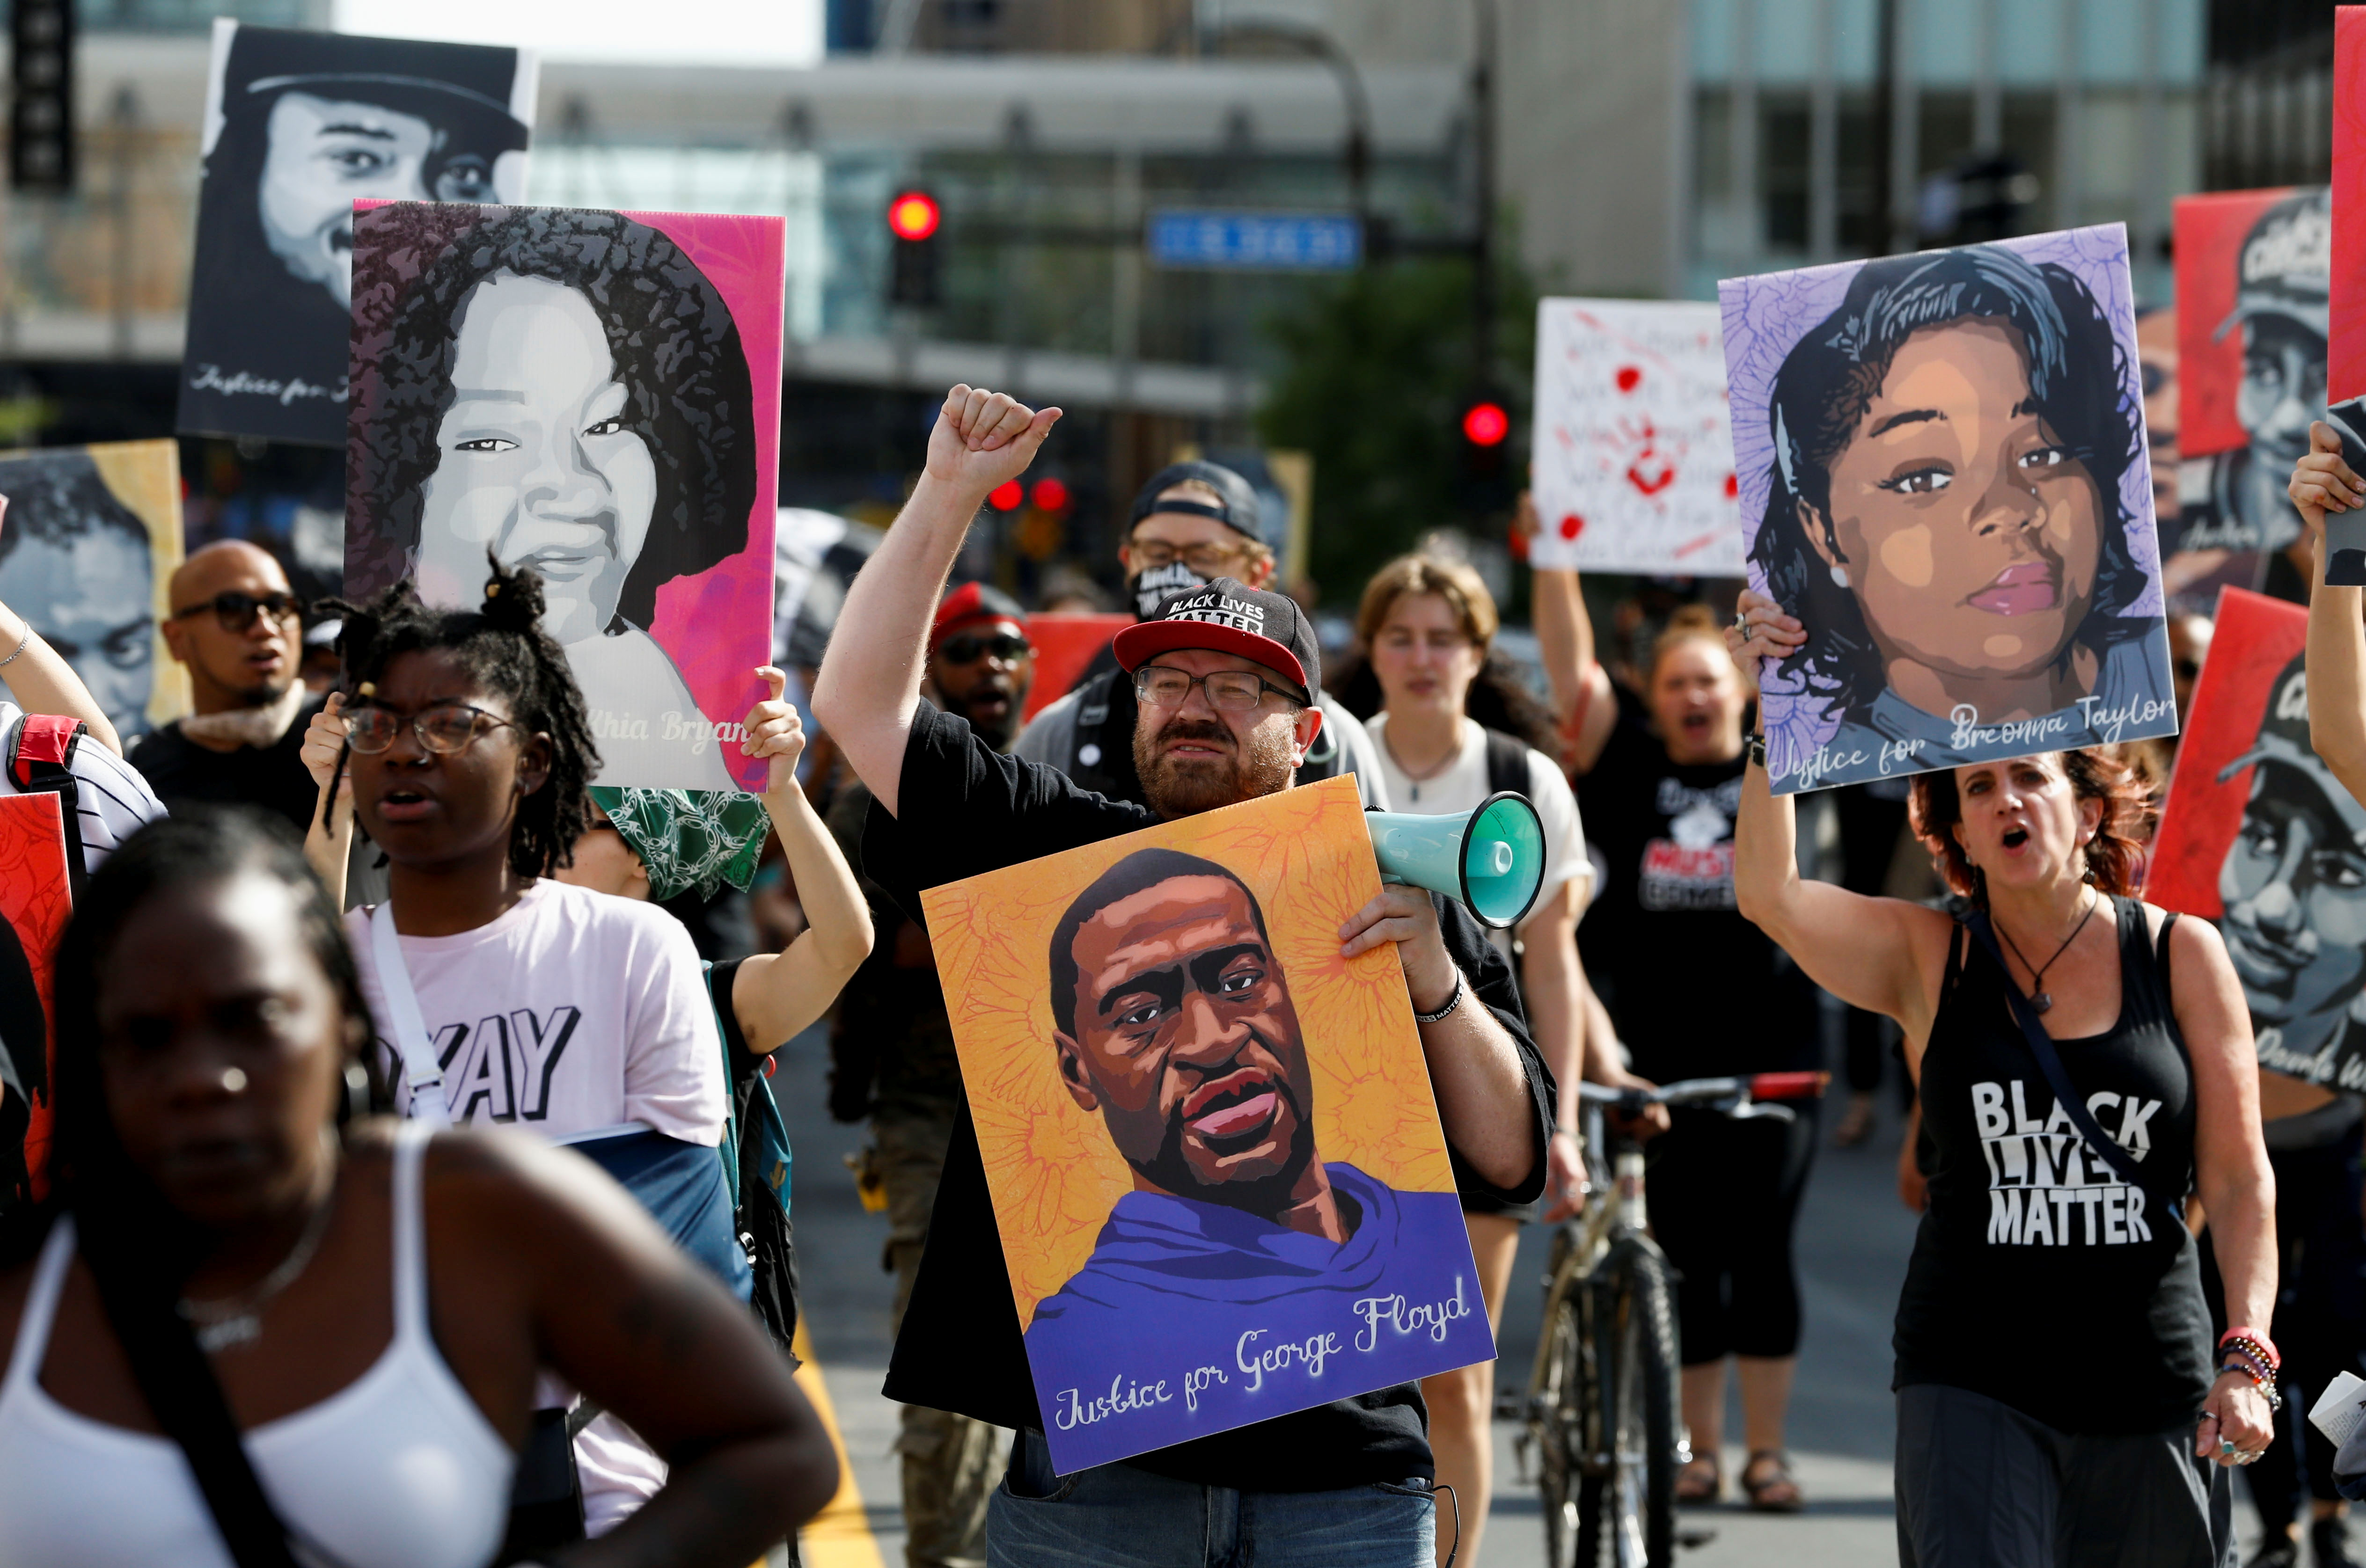 Protesters march during a brief rally after the sentencing of Derek Chauvin, the former Minneapolis policeman found guilty of killing George Floyd, a Black man, in Minneapolis, Minnesota, U.S. June 25, 2021. REUTERS/Eric Miller